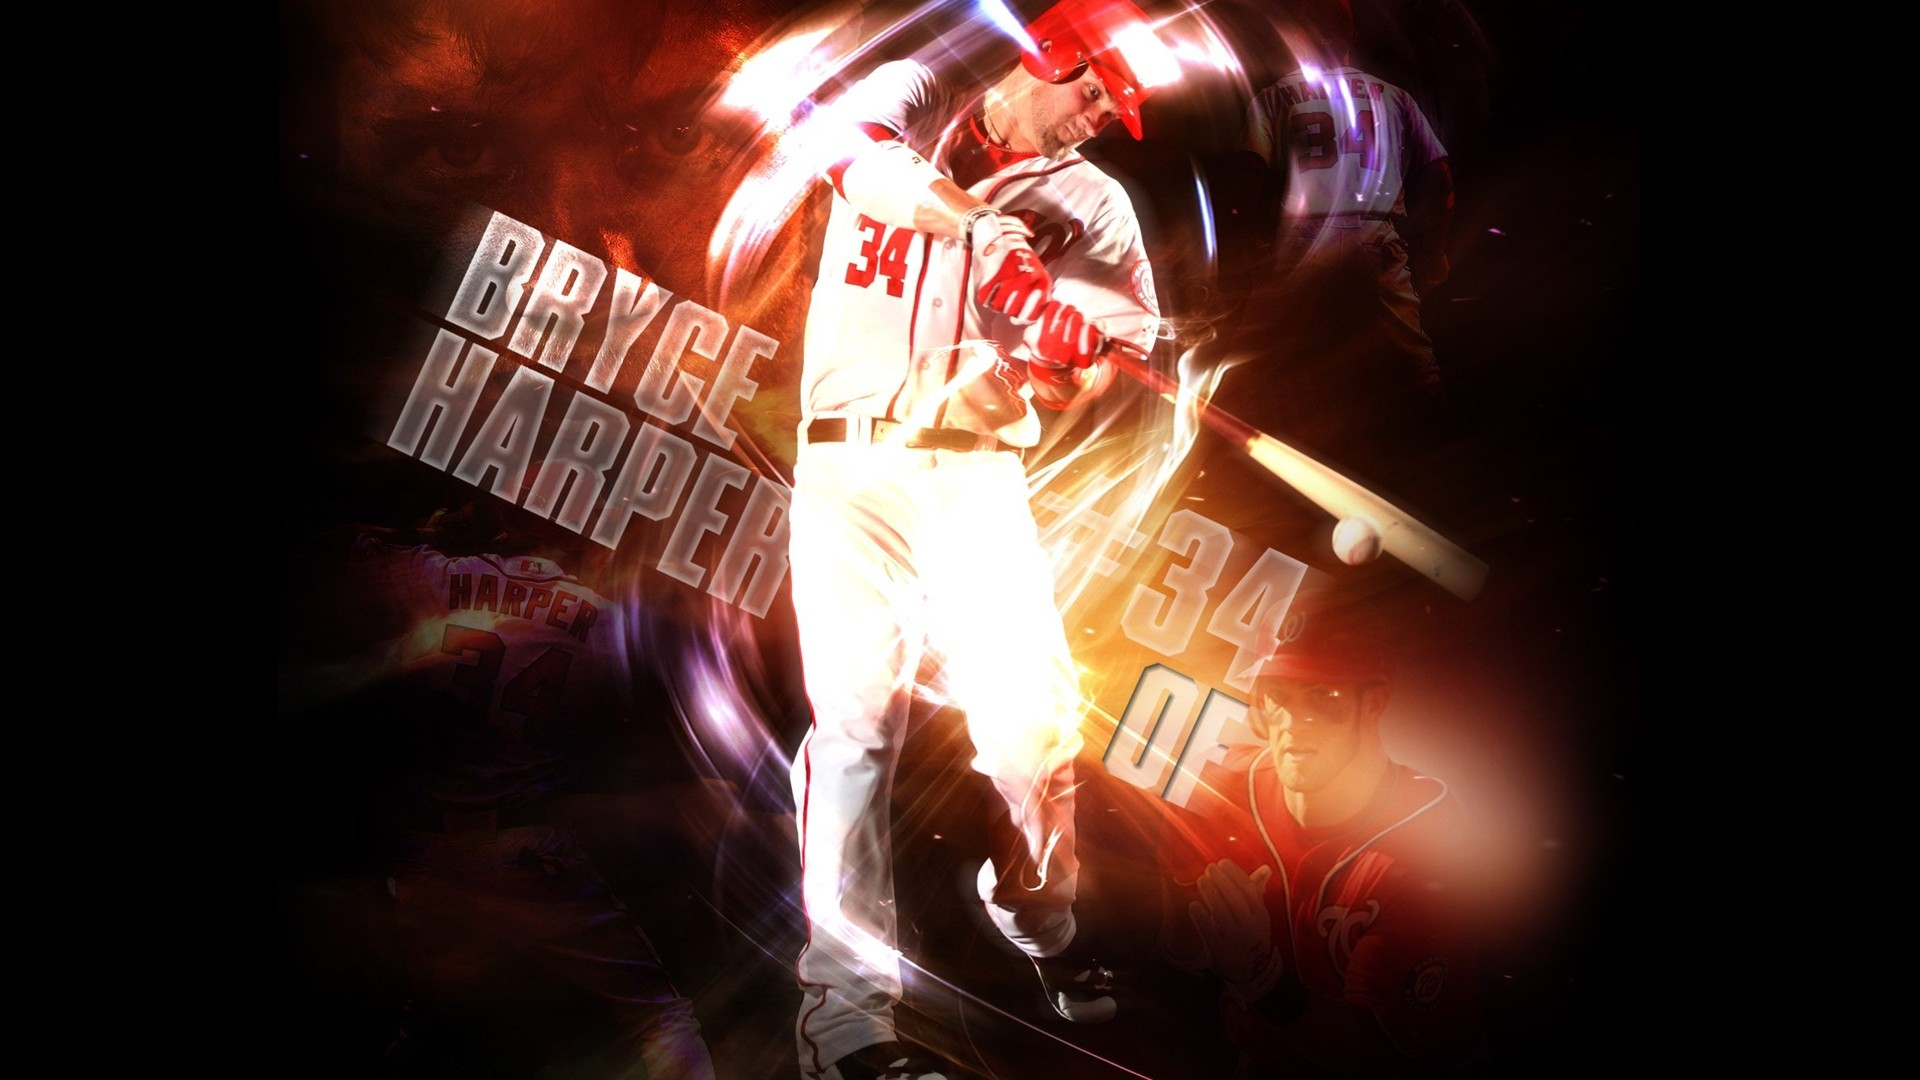 … Bryce Harper Wallpaper HD …